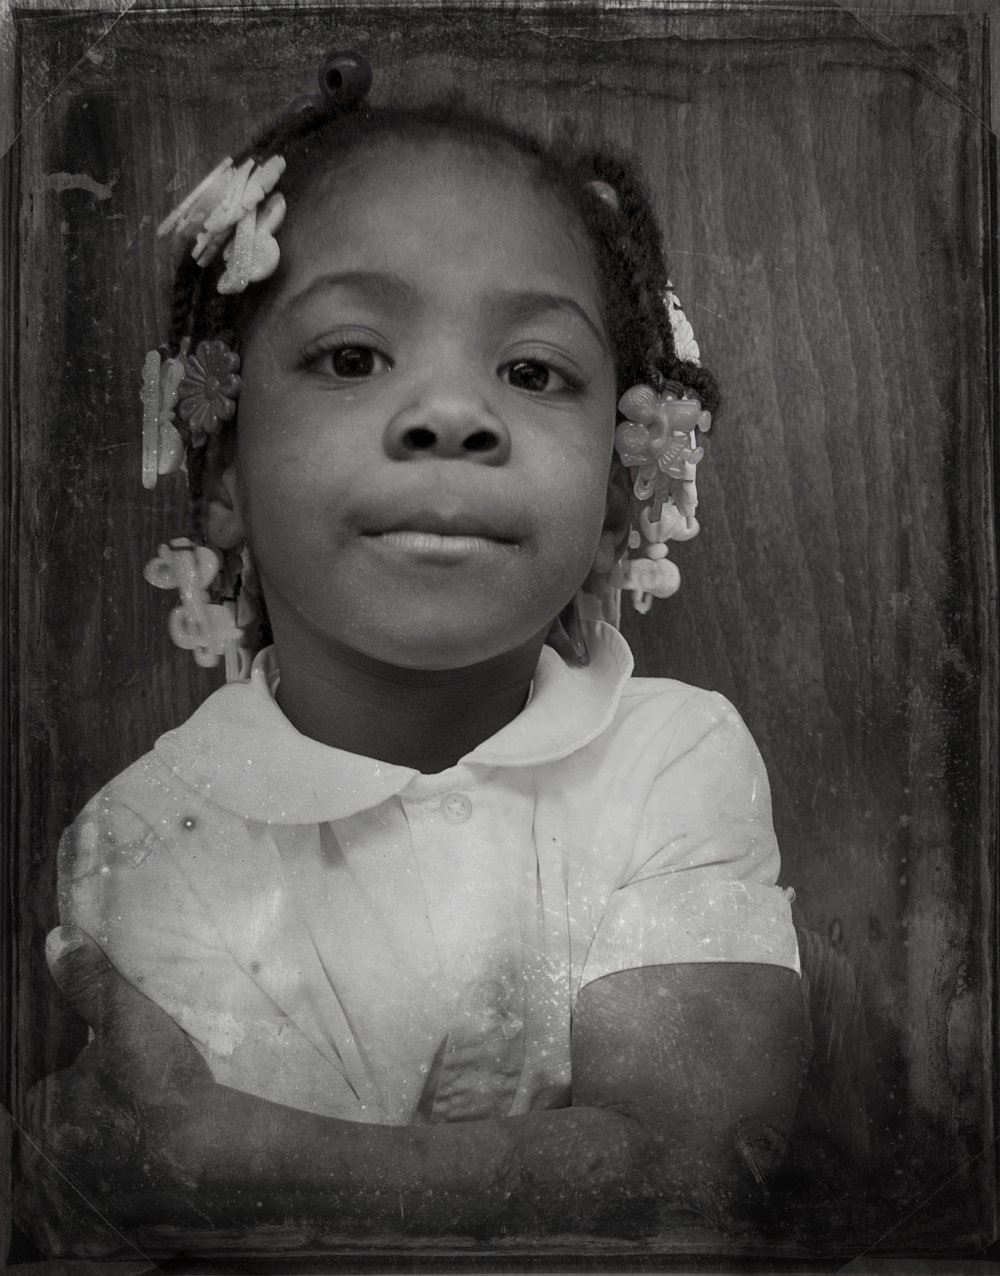 PORTRAITS | Girl in Collared Shirt, Chicago